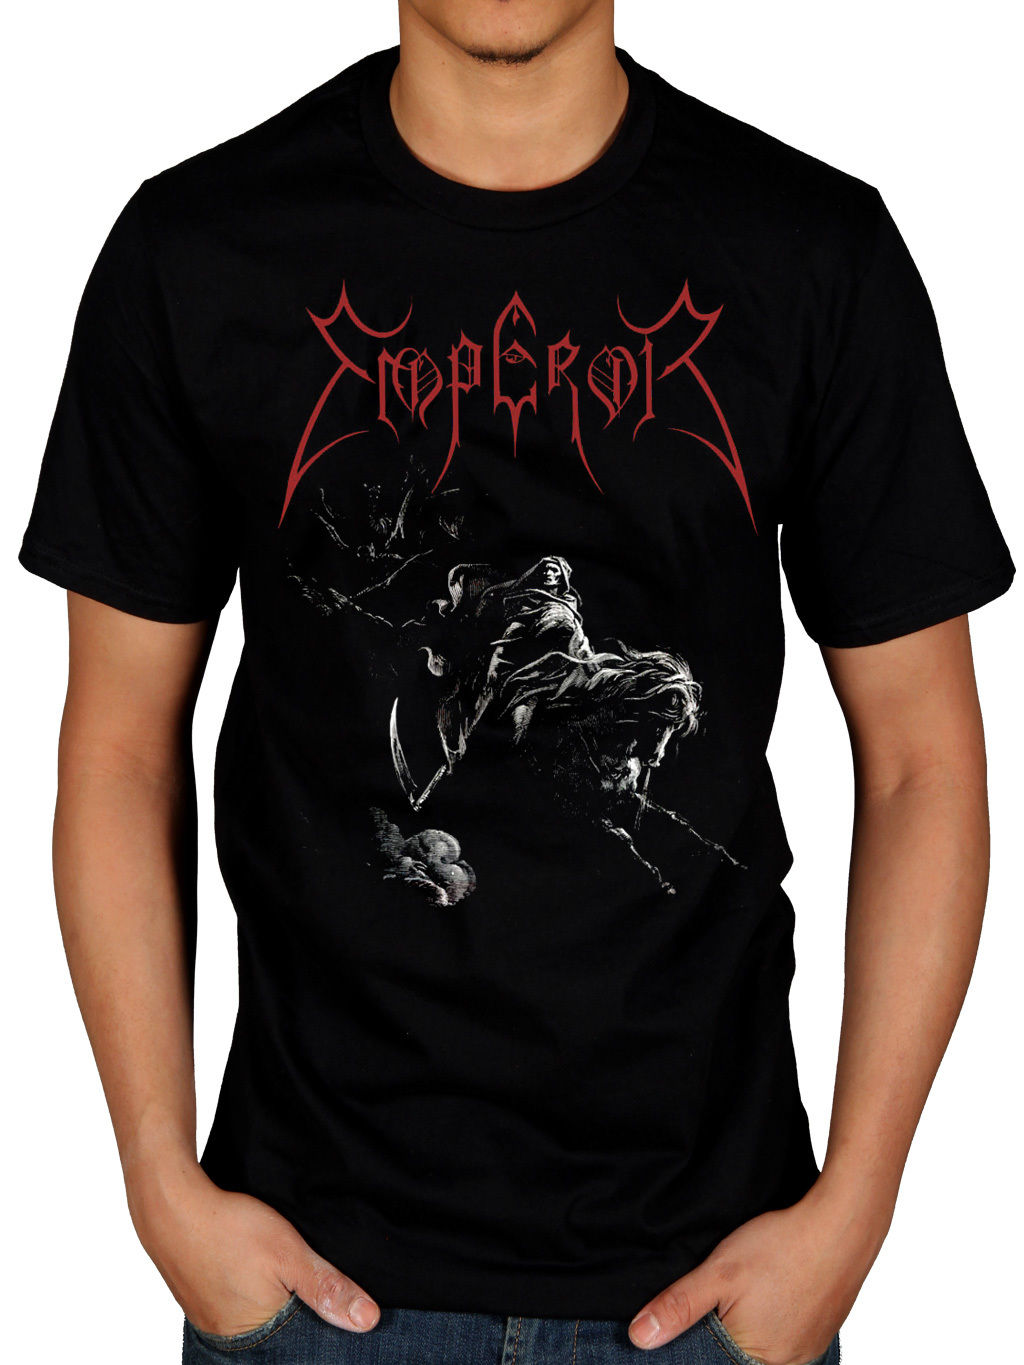 T black shirt rock - 100 Cotton Gildan Short Sleeve Emperor Rider 2005 T Shirt Rock Band Tour Merch Black